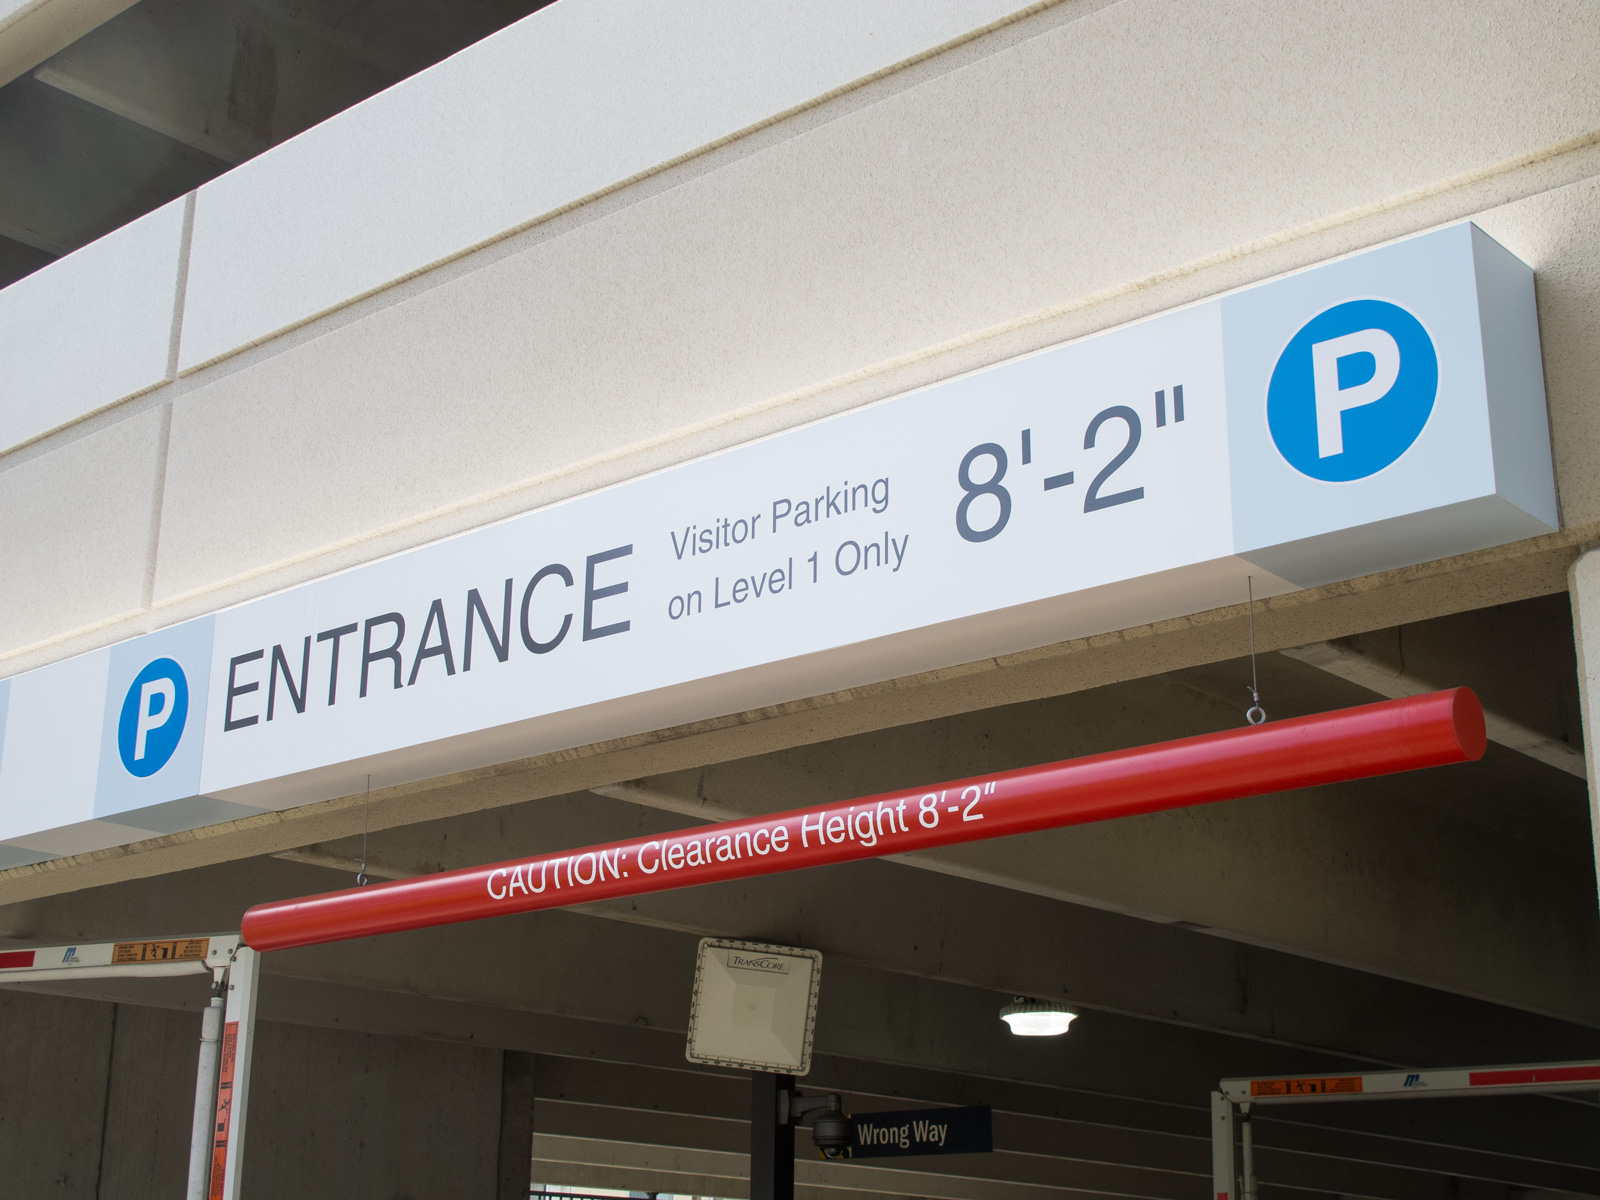 Close up view from side of fabricated entry and exit signage with clearance bar of parking garage.